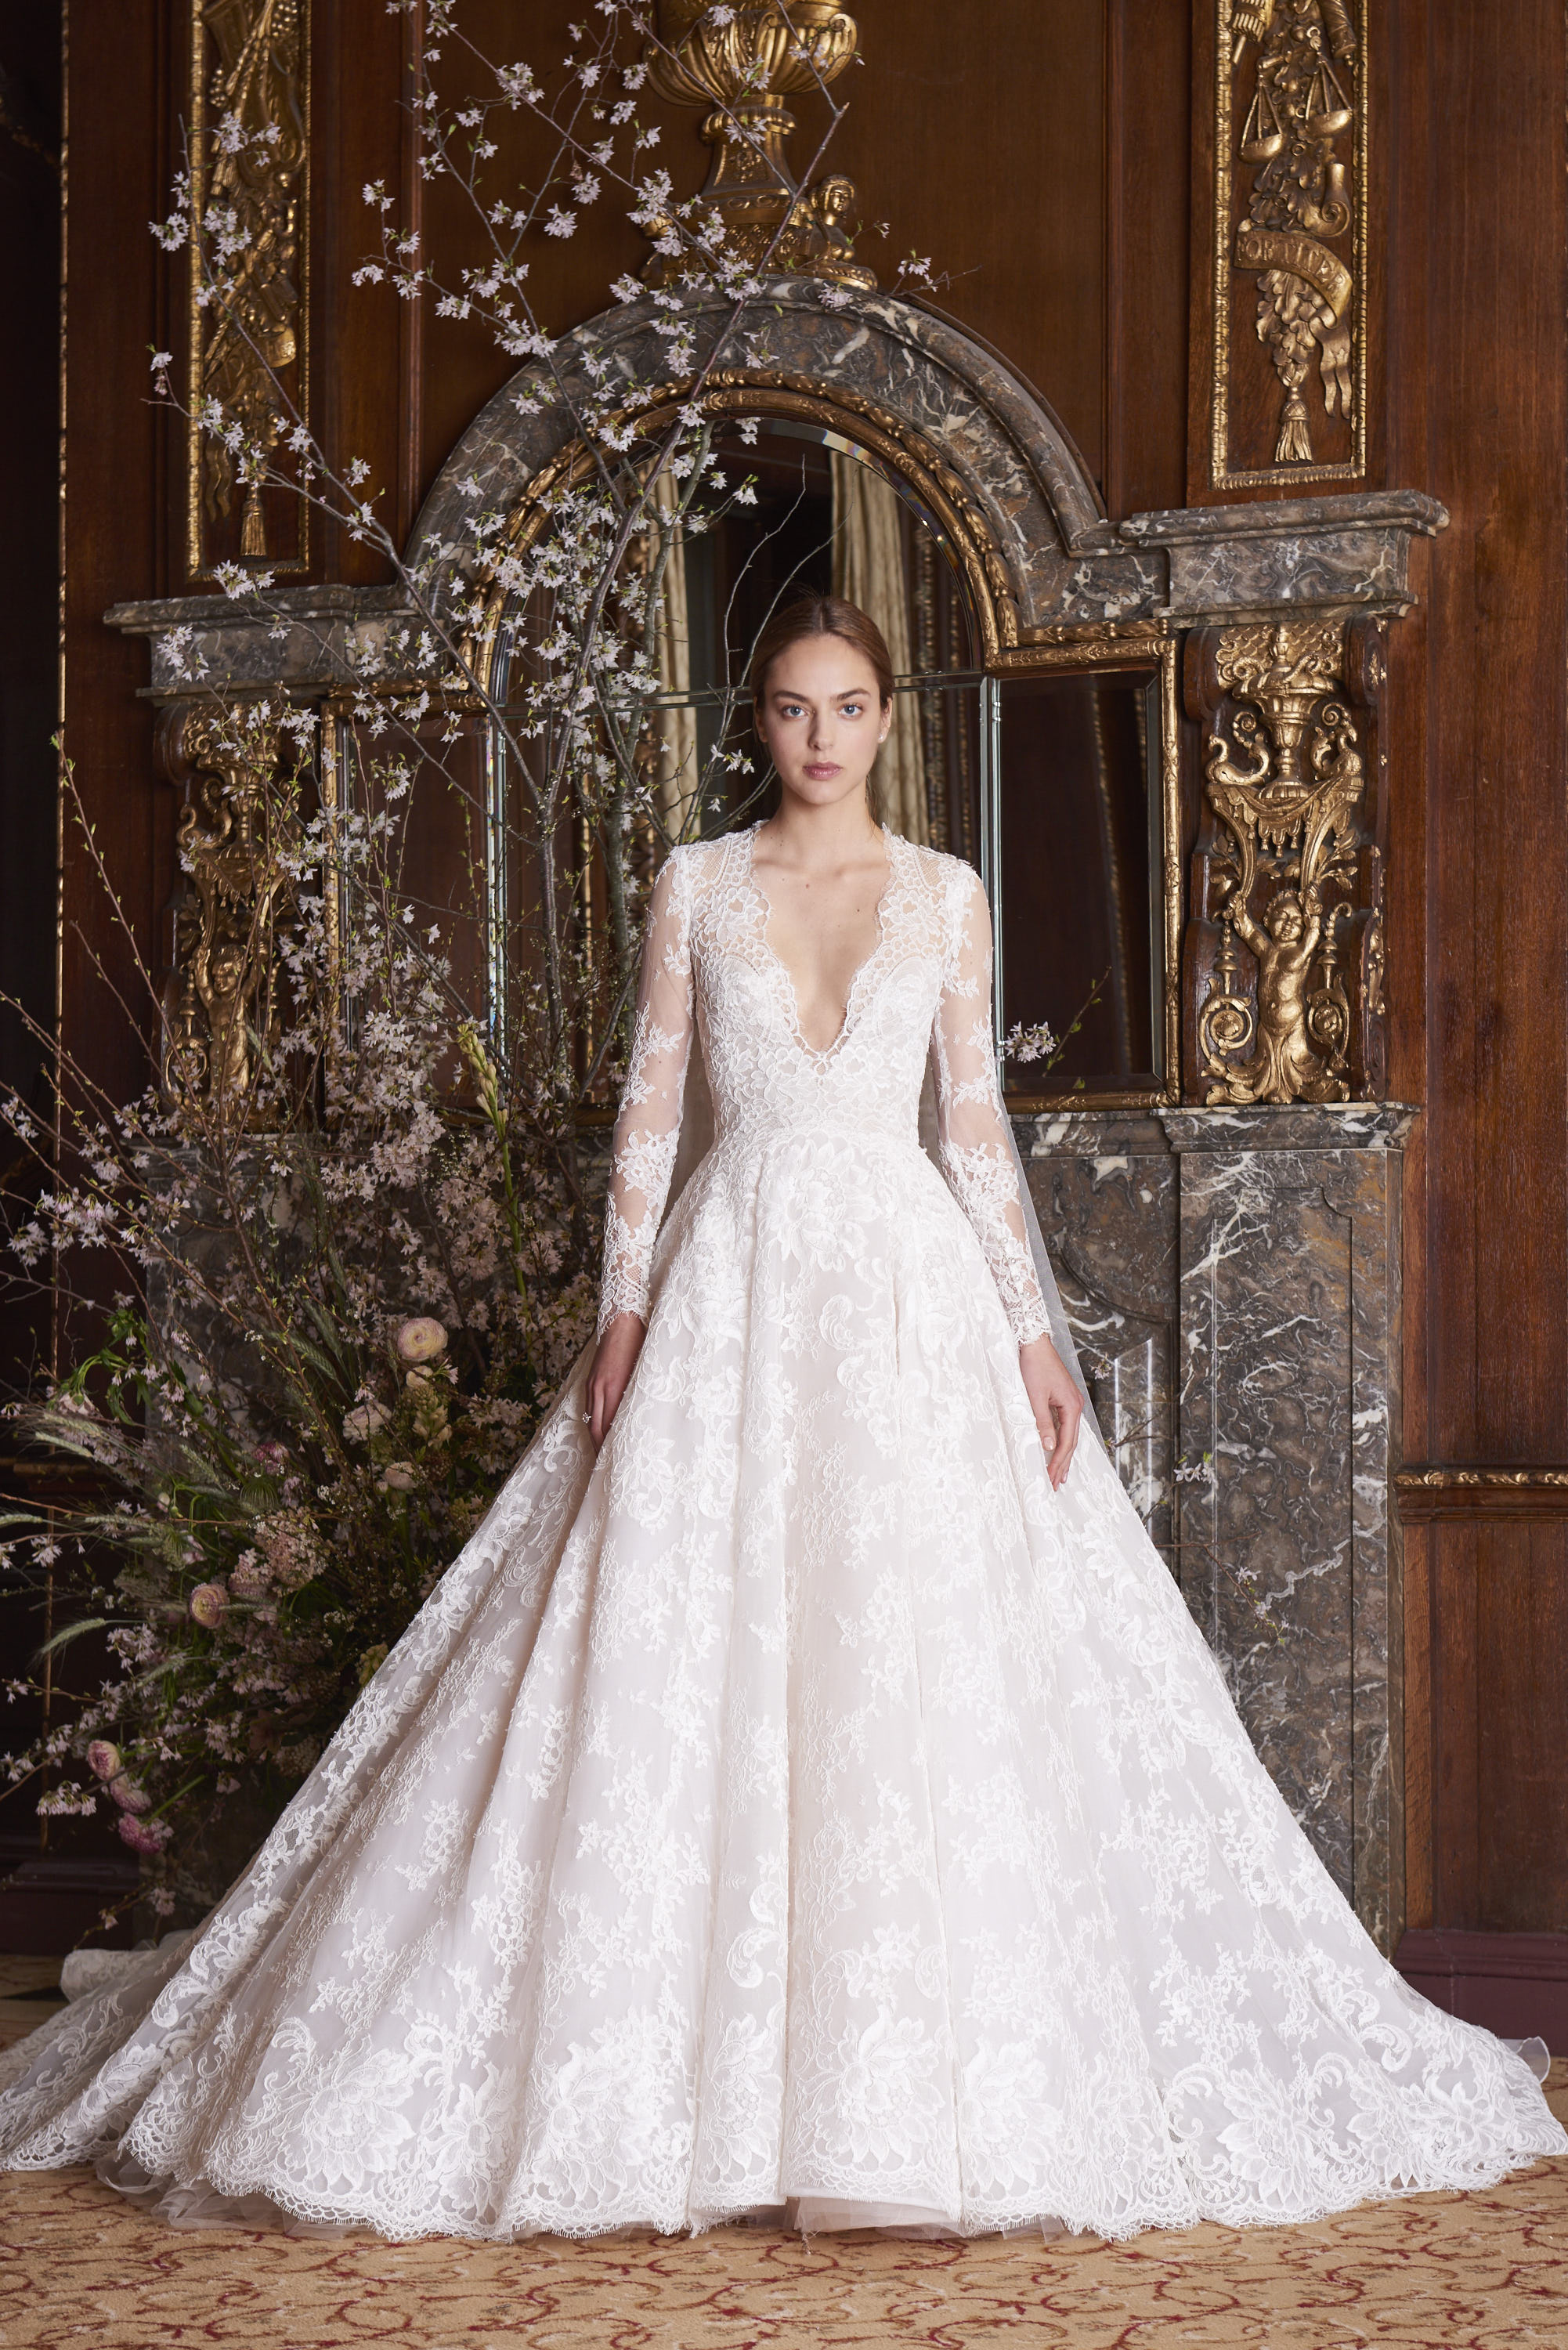 monique lhuillier wedding dress spring 2019 v-neck long sleeve